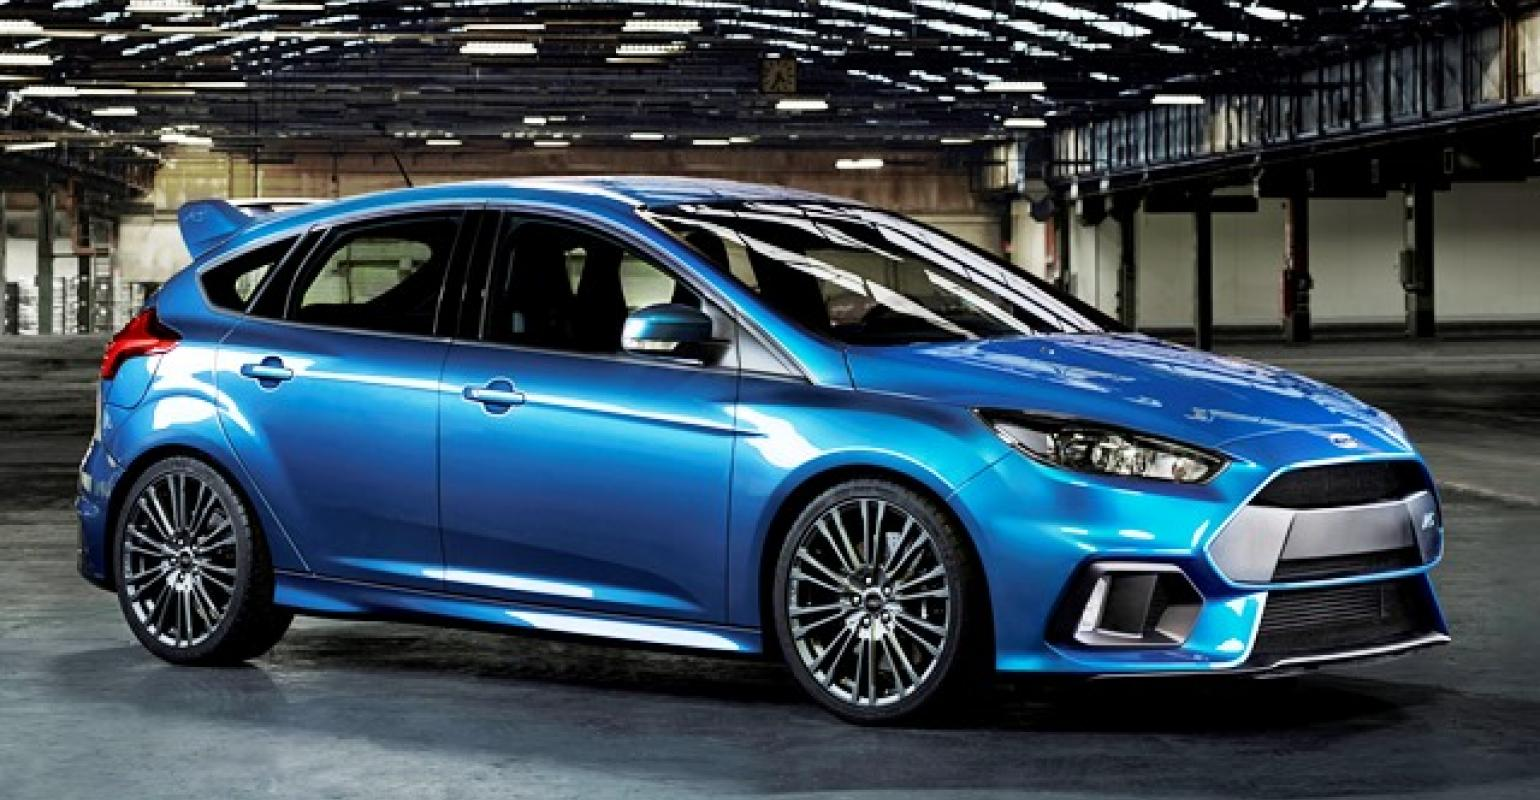 Ford Focus Awd >> Ford Focus Rs Joins Awd Hot Hatch Segment Wardsauto